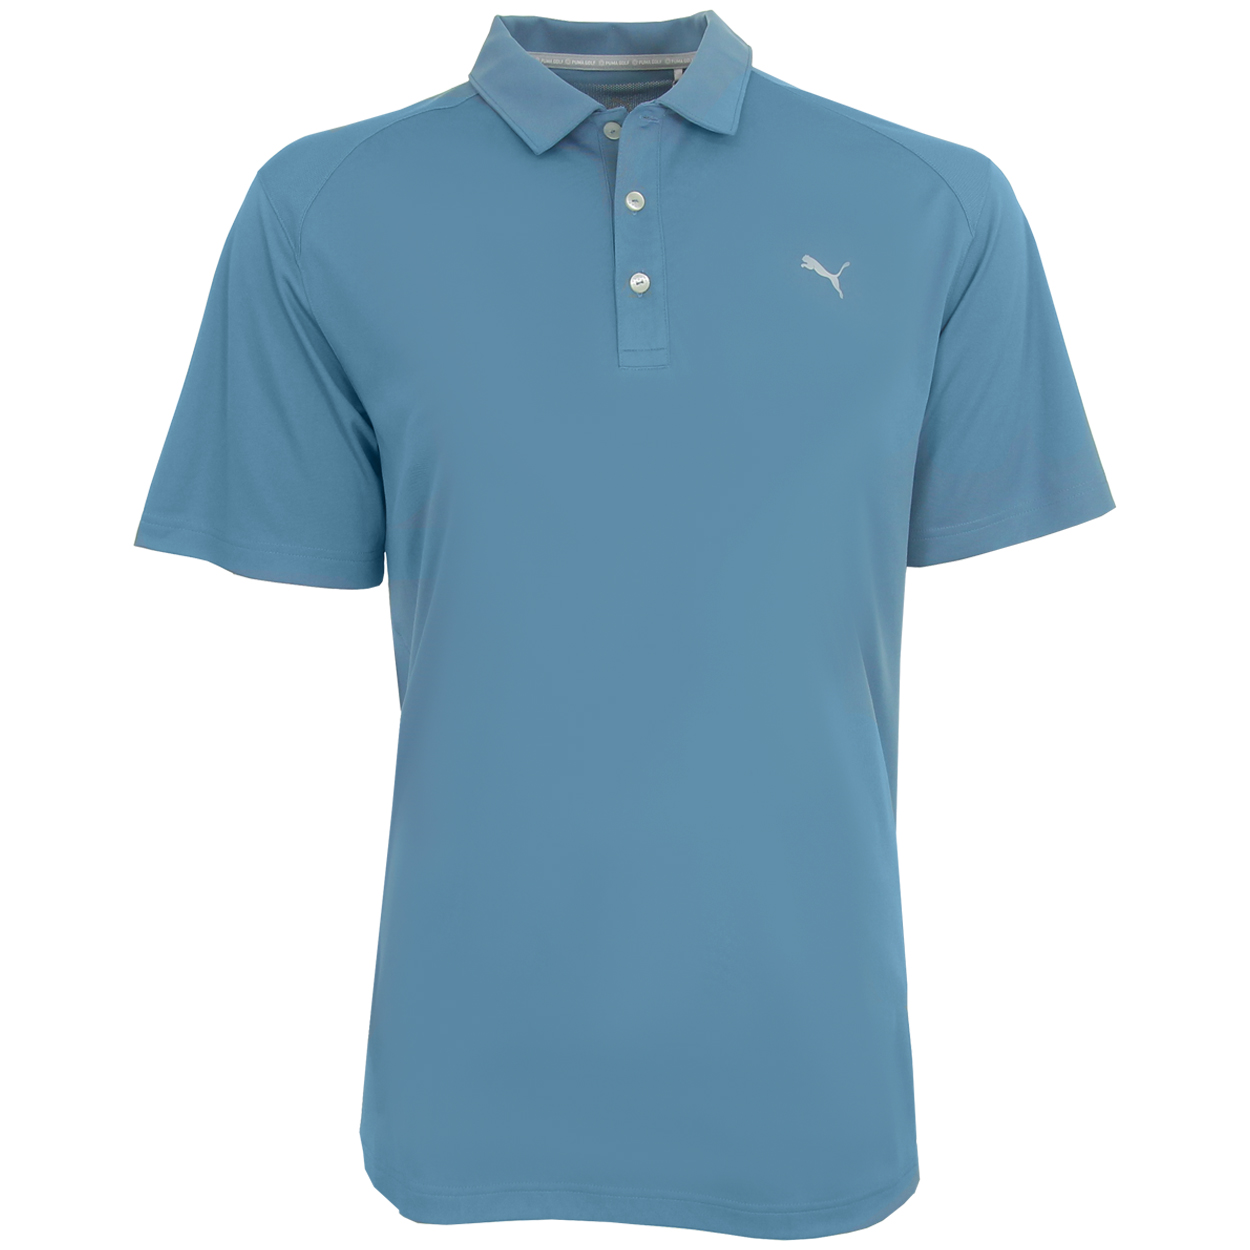 Puma golf men 39 s ess pounce polo golf shirt brand new ebay for Mens puma golf shirts